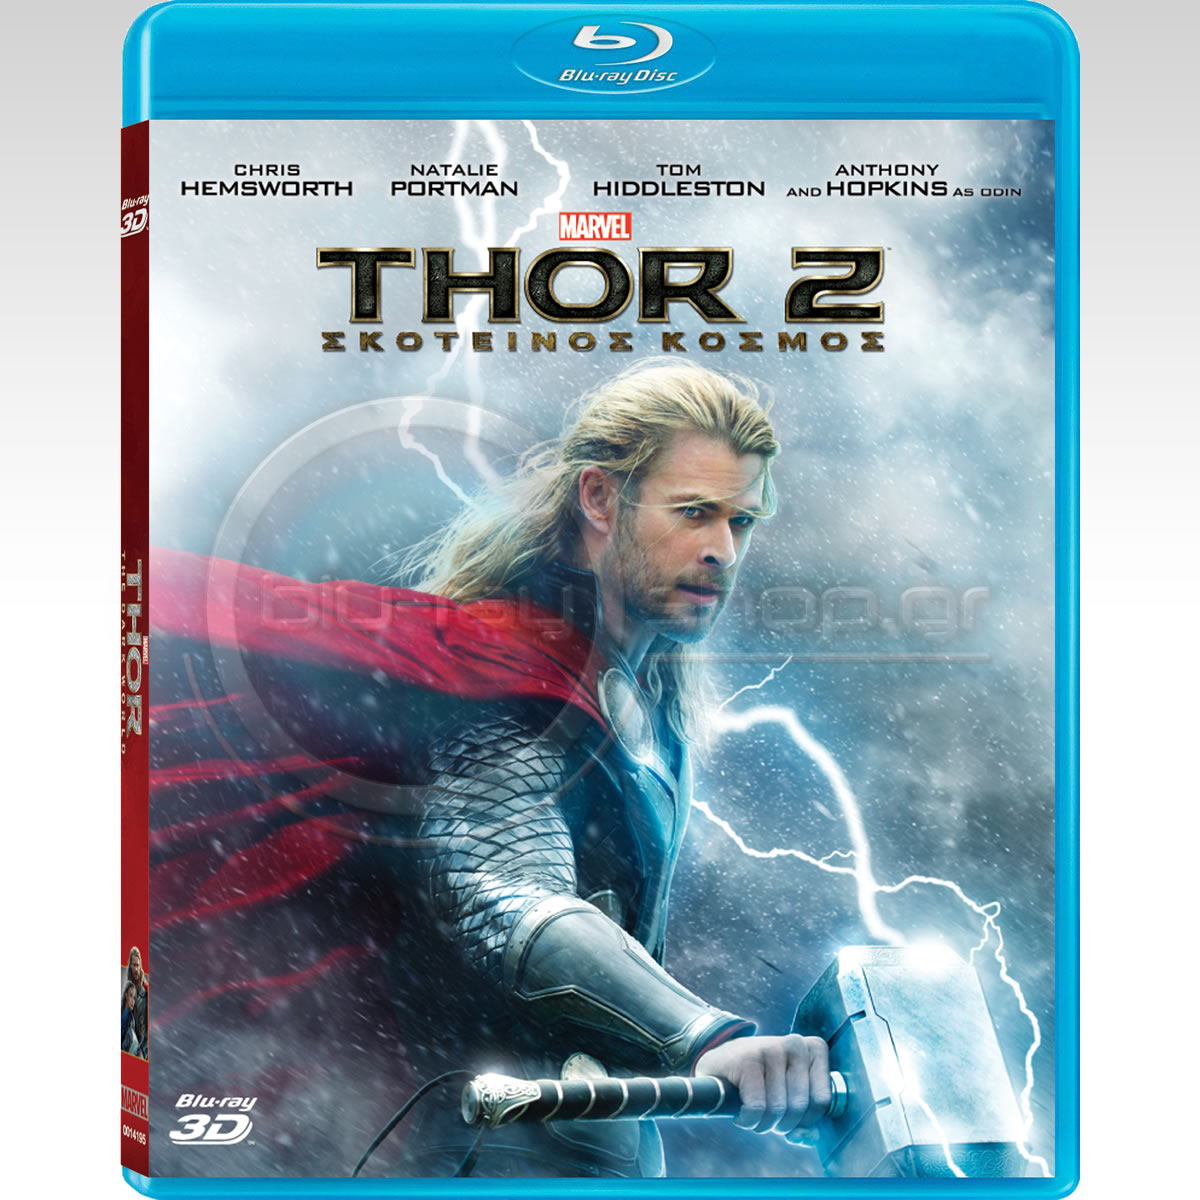 THOR: THE DARK WORLD 3D Superset - THOR 2: ΣΚΟΤΕΙΝΟΣ ΚΟΣΜΟΣ 3D Superset (BLU-RAY 3D + BLU-RAY)